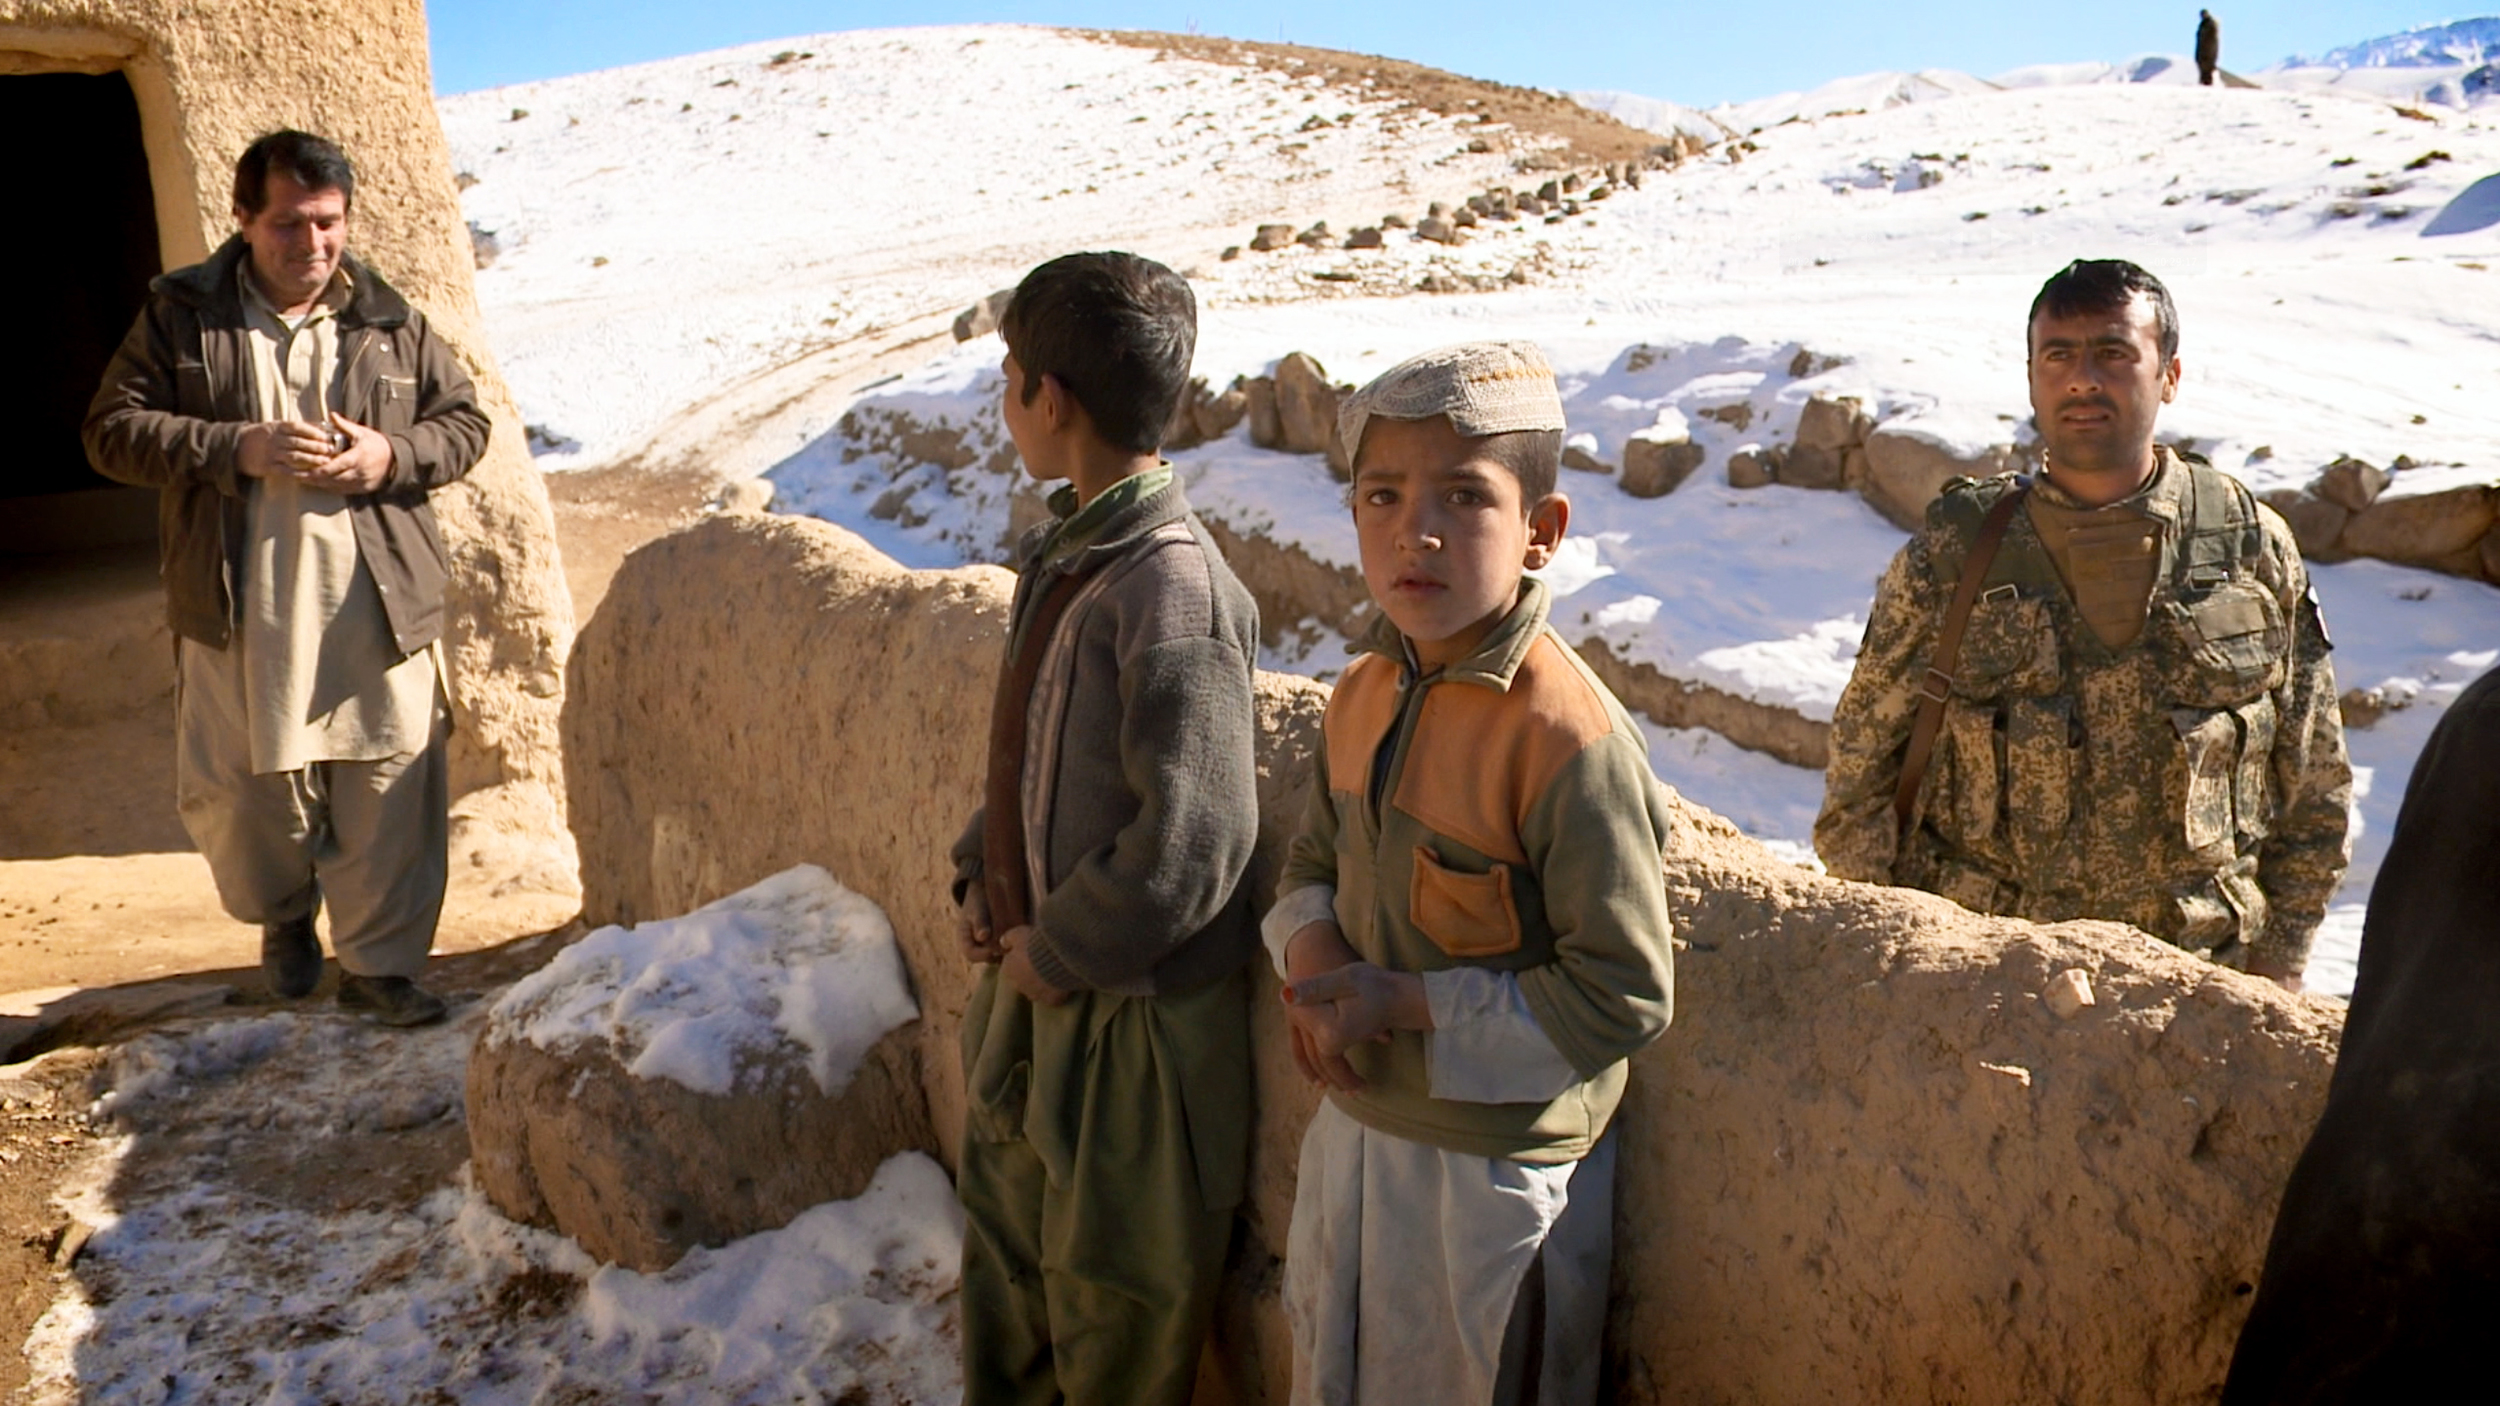 Some of the Afghan children who will be displaced due to the mining operation.